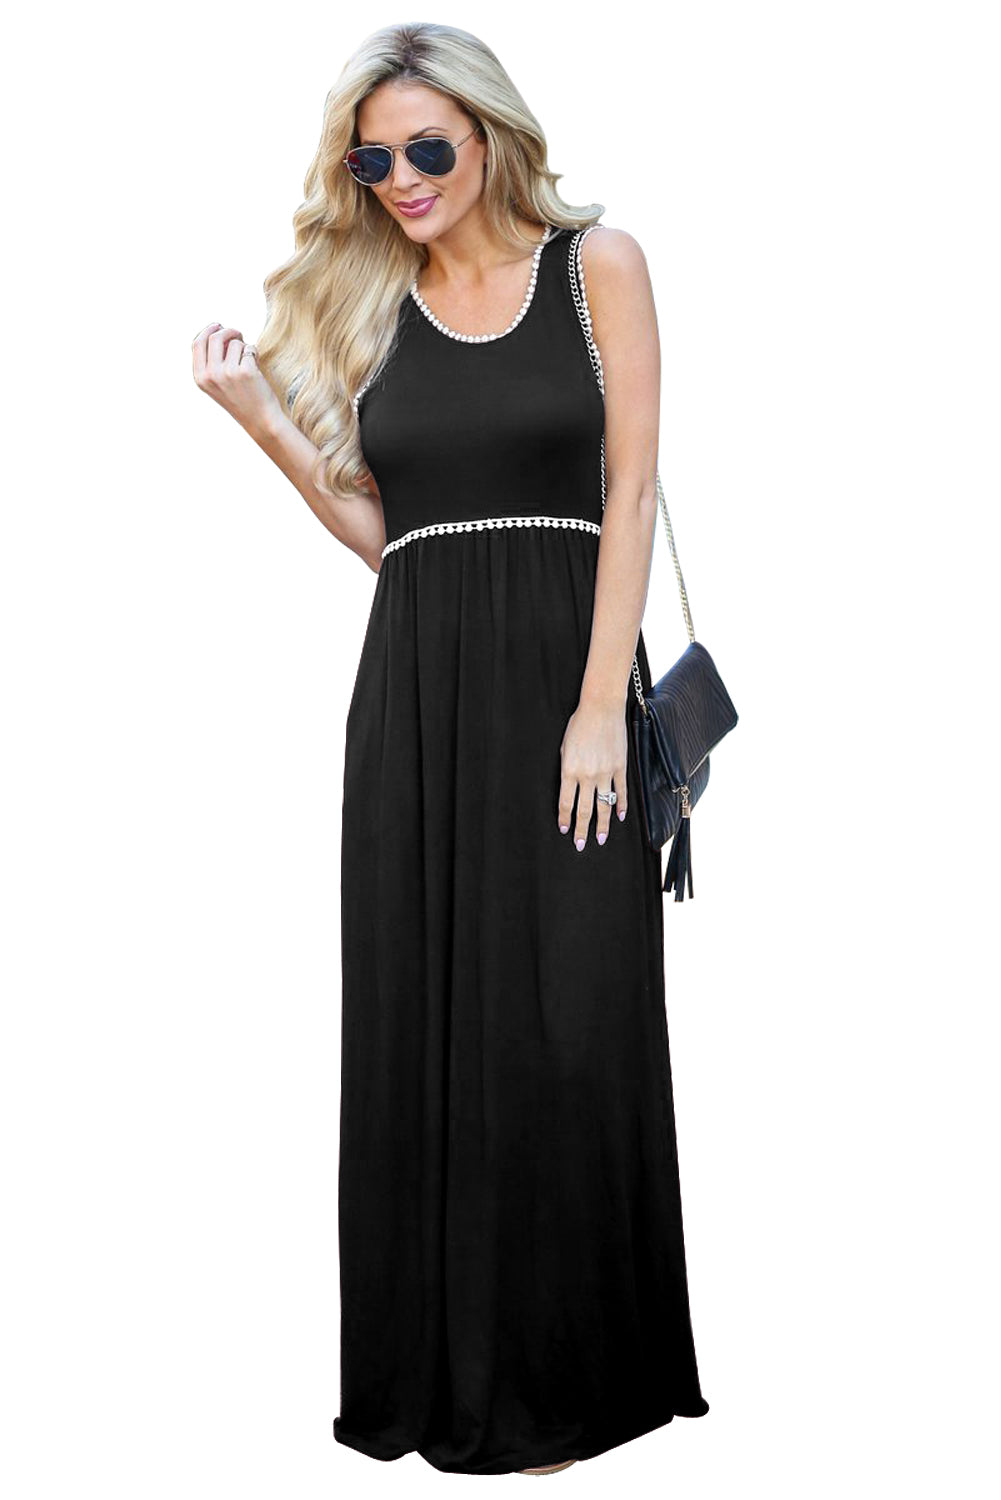 Crochet Pompom Trim Black Sleeveless Maxi Dress Maxi Dresses Discount Designer Fashion Clothes Shoes Bags Women Men Kids Children Black Owned Business